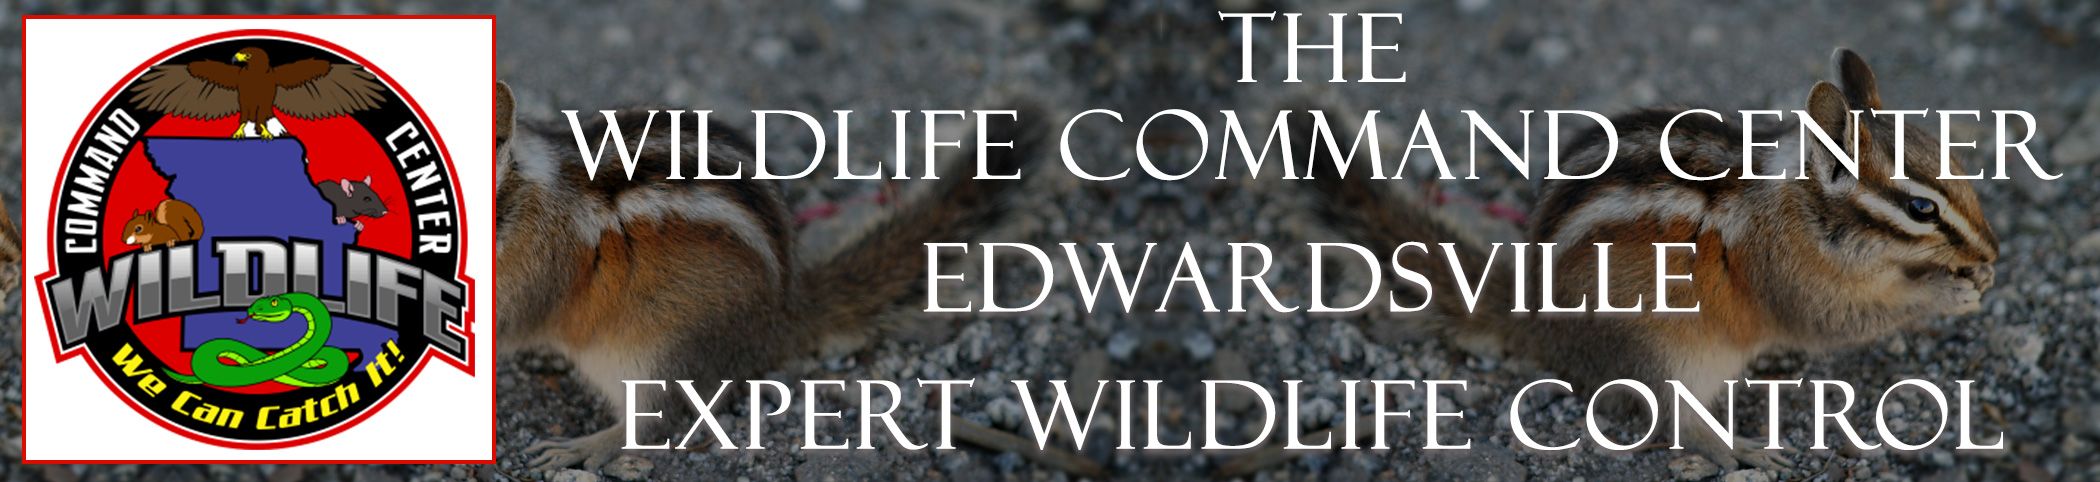 The Wildlife Command Center Edwardsville Missouri Image